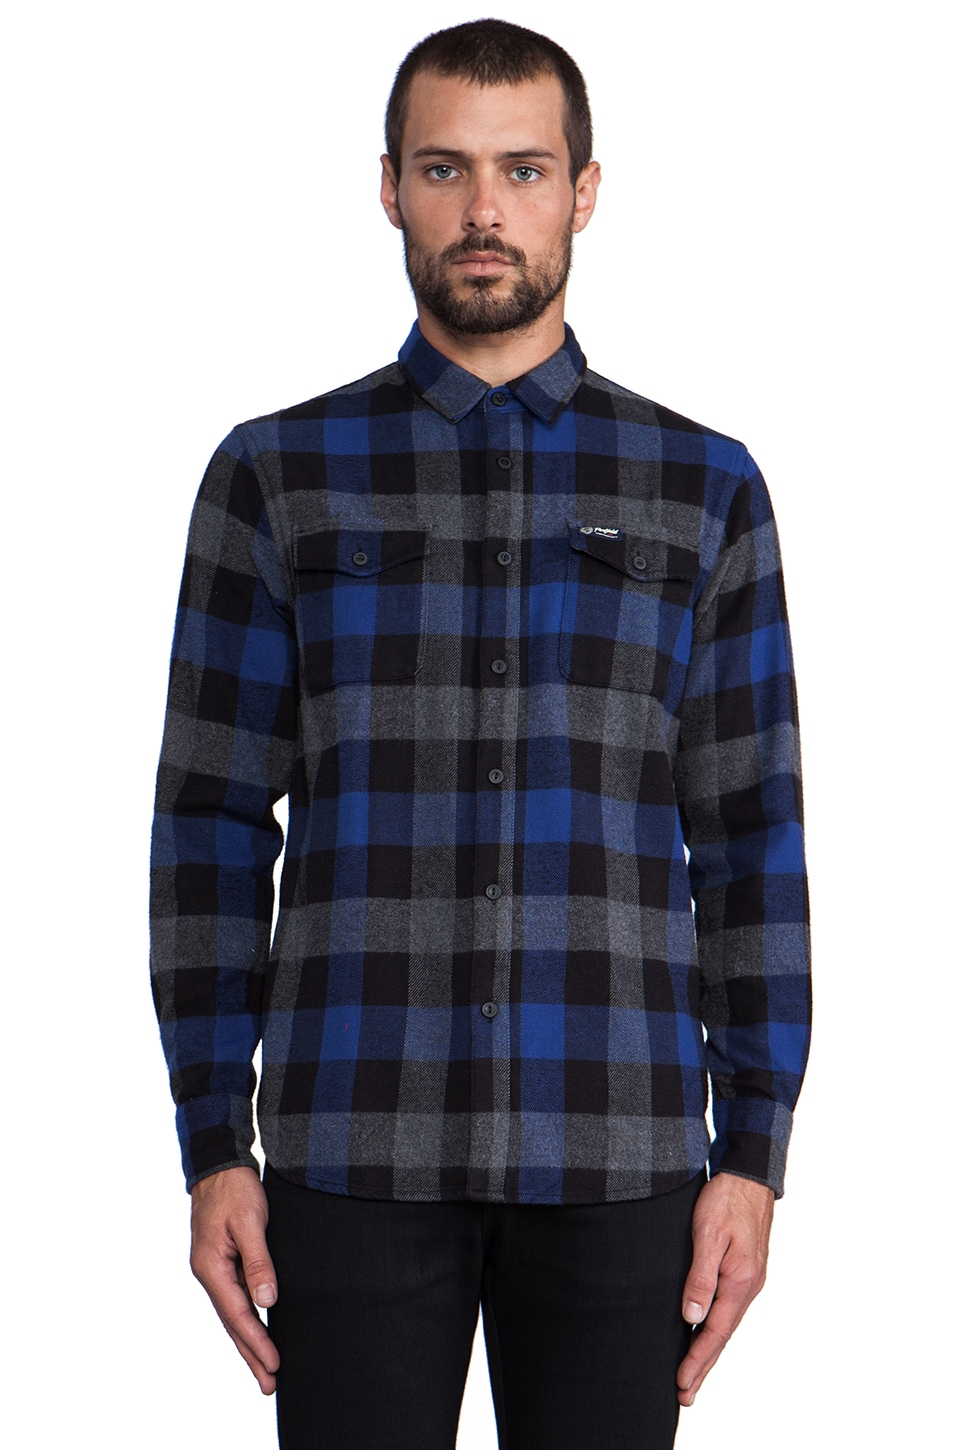 Penfield Chatham Buffalo Plaid Shirt in Blue